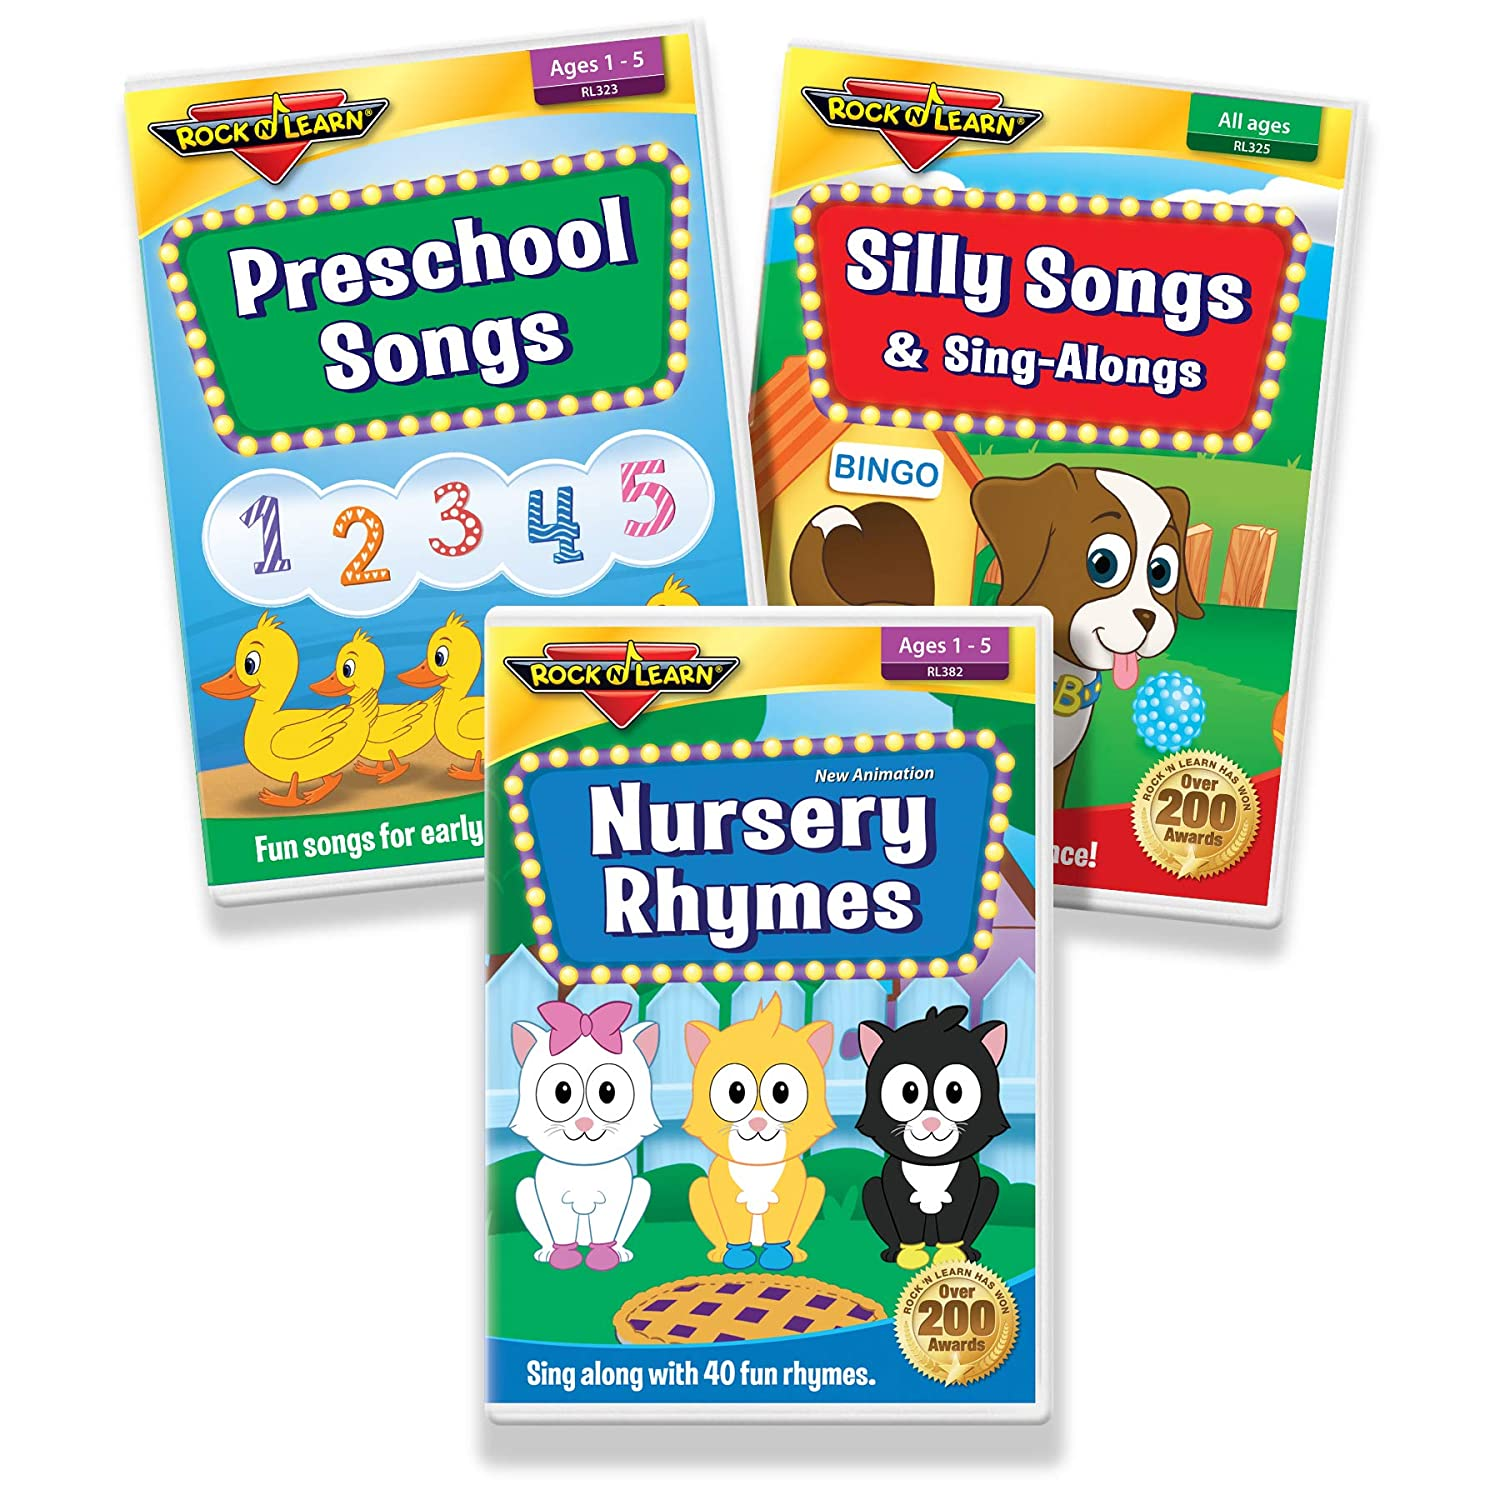 Preschool Songs for Kids 3 DVD Collection - Nursery Rhymes, Preschool Songs, and Silly Songs